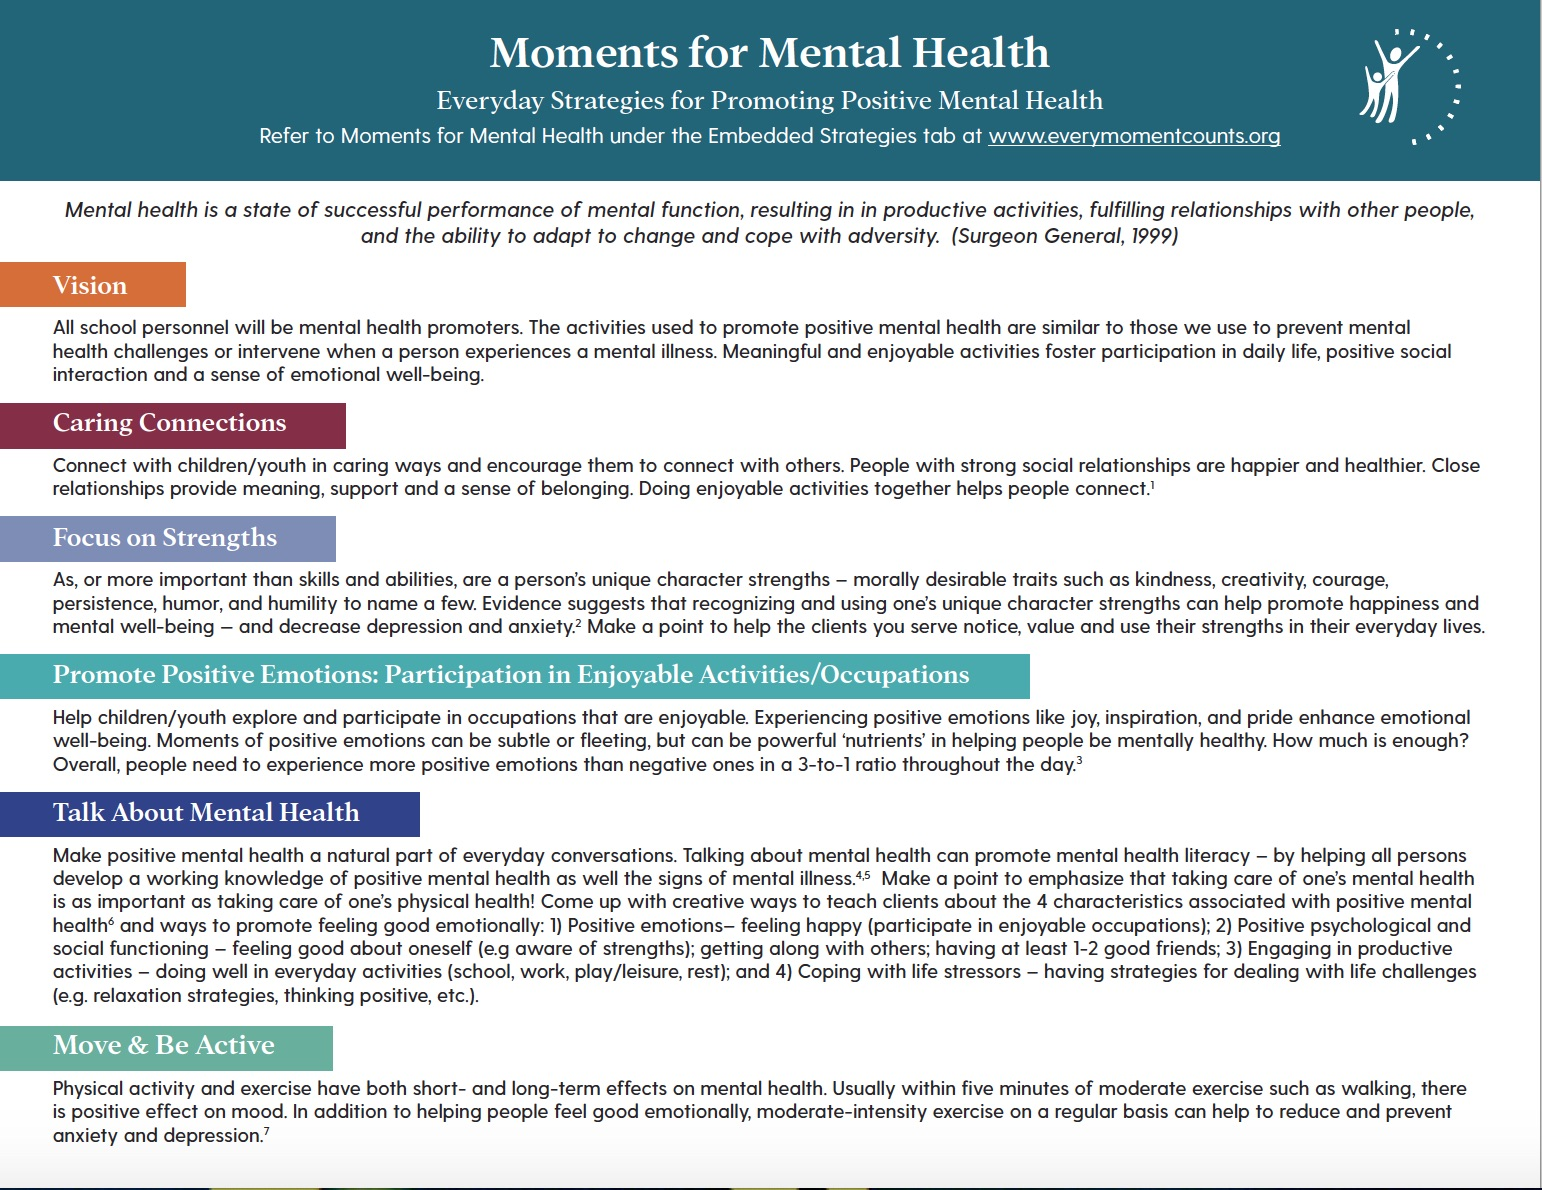 Screen Shot 2021-01-13 at 4.55.18 PM copy